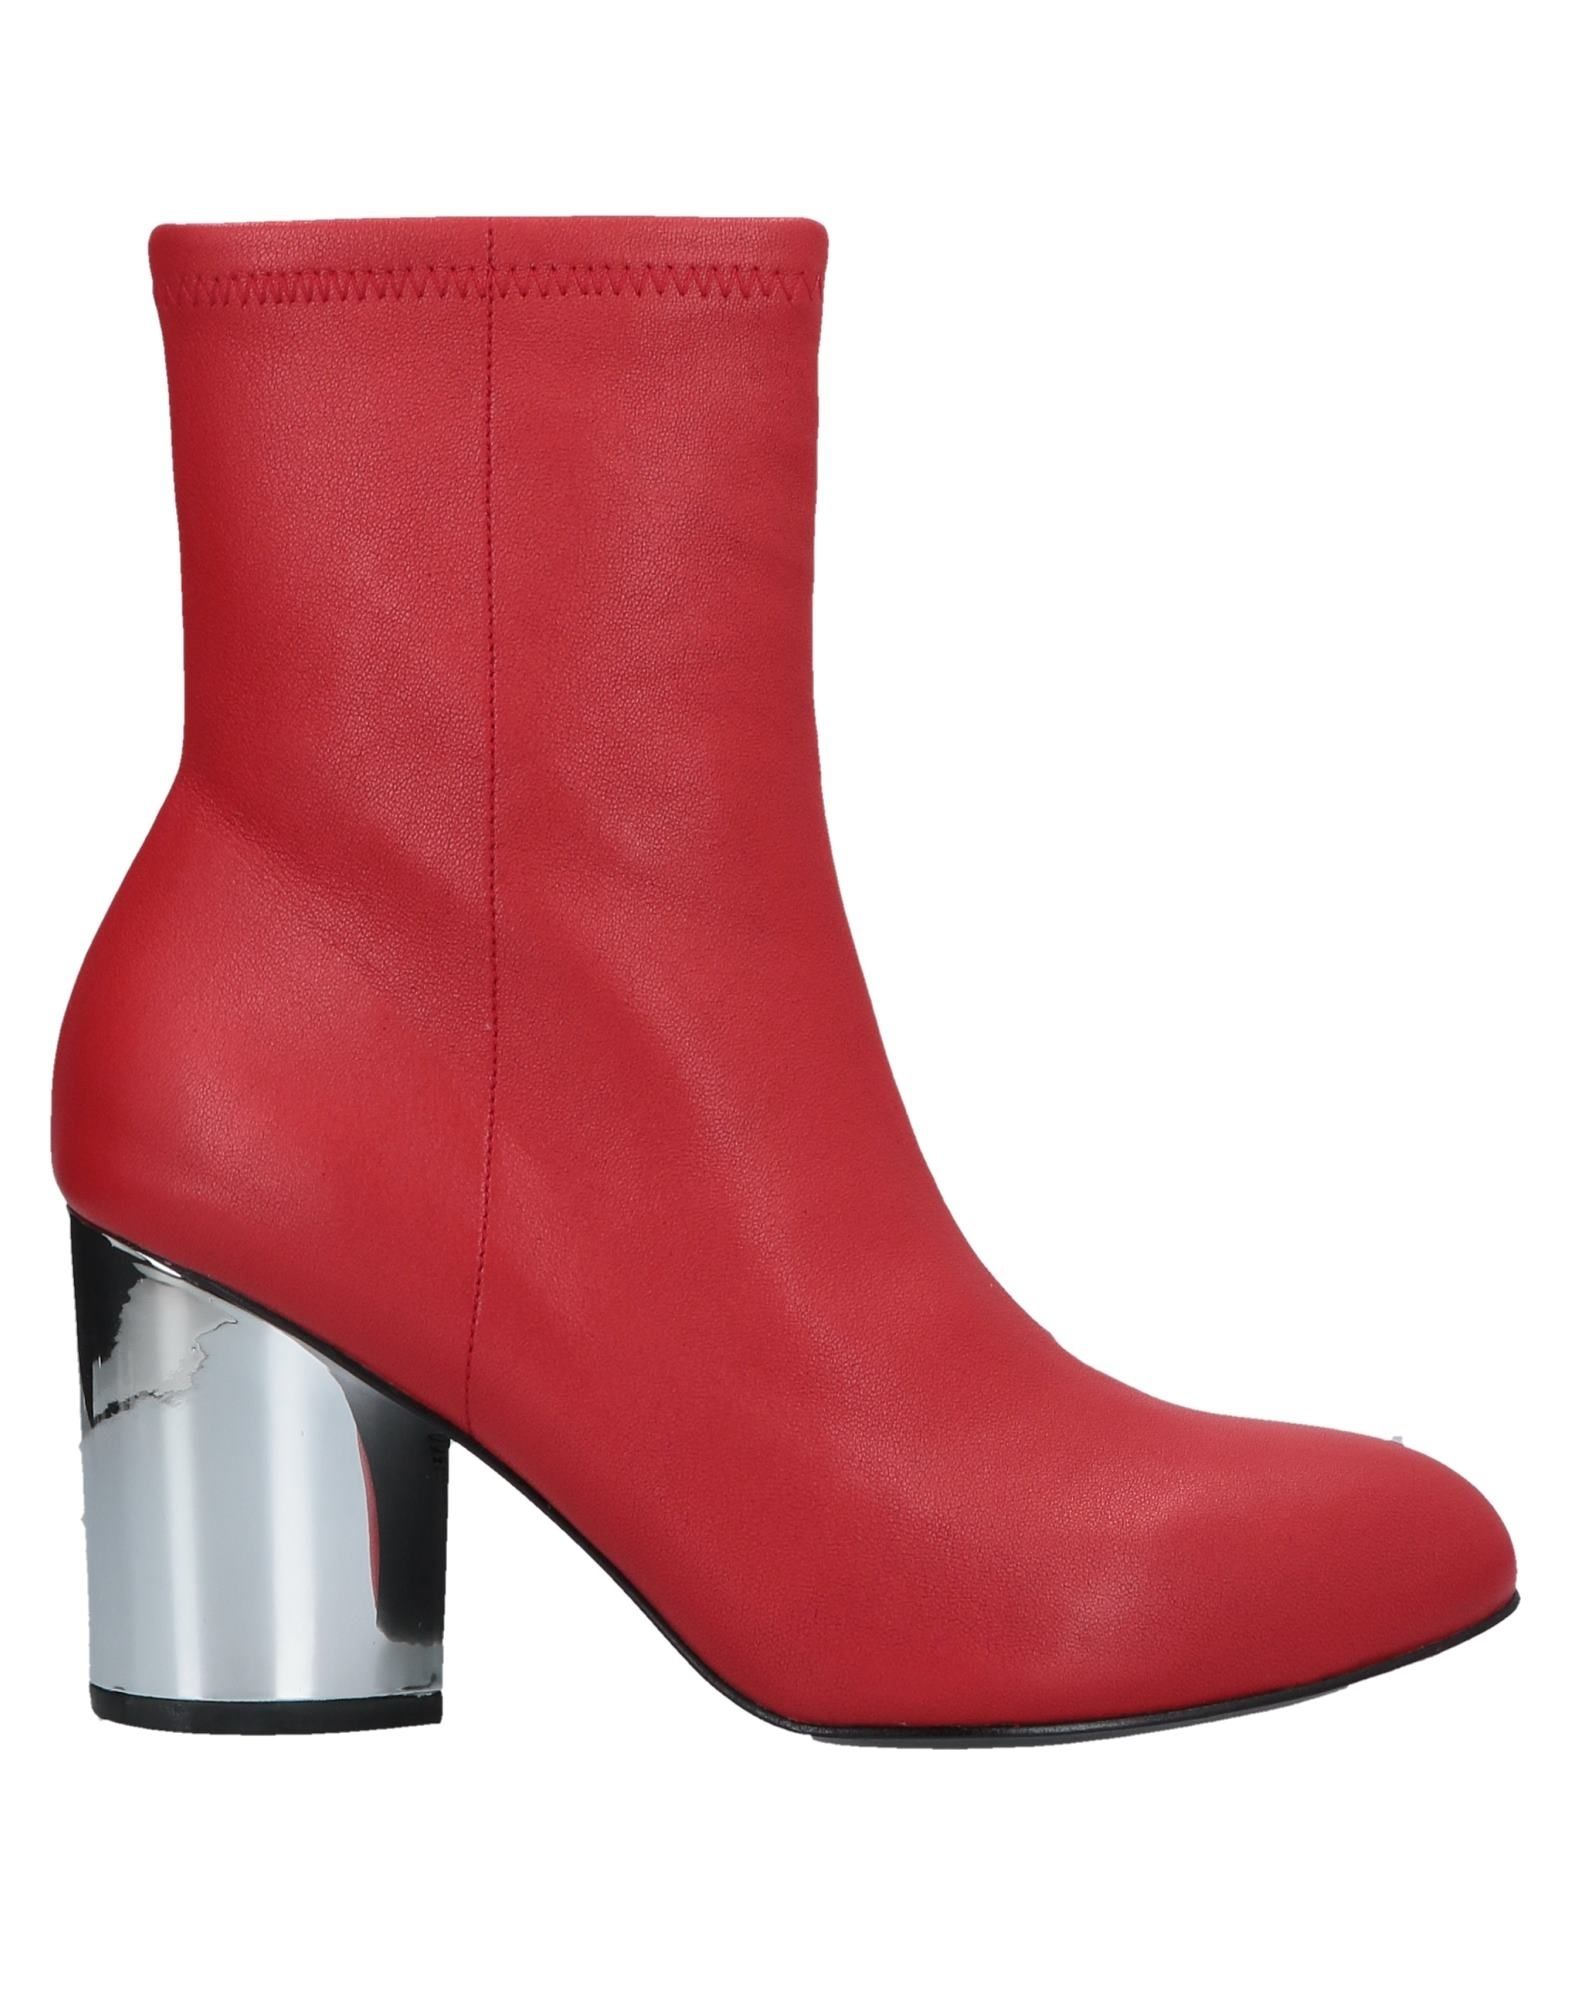 OPENING CEREMONY   OPENING CEREMONY Ankle Boots 11694022   Goxip